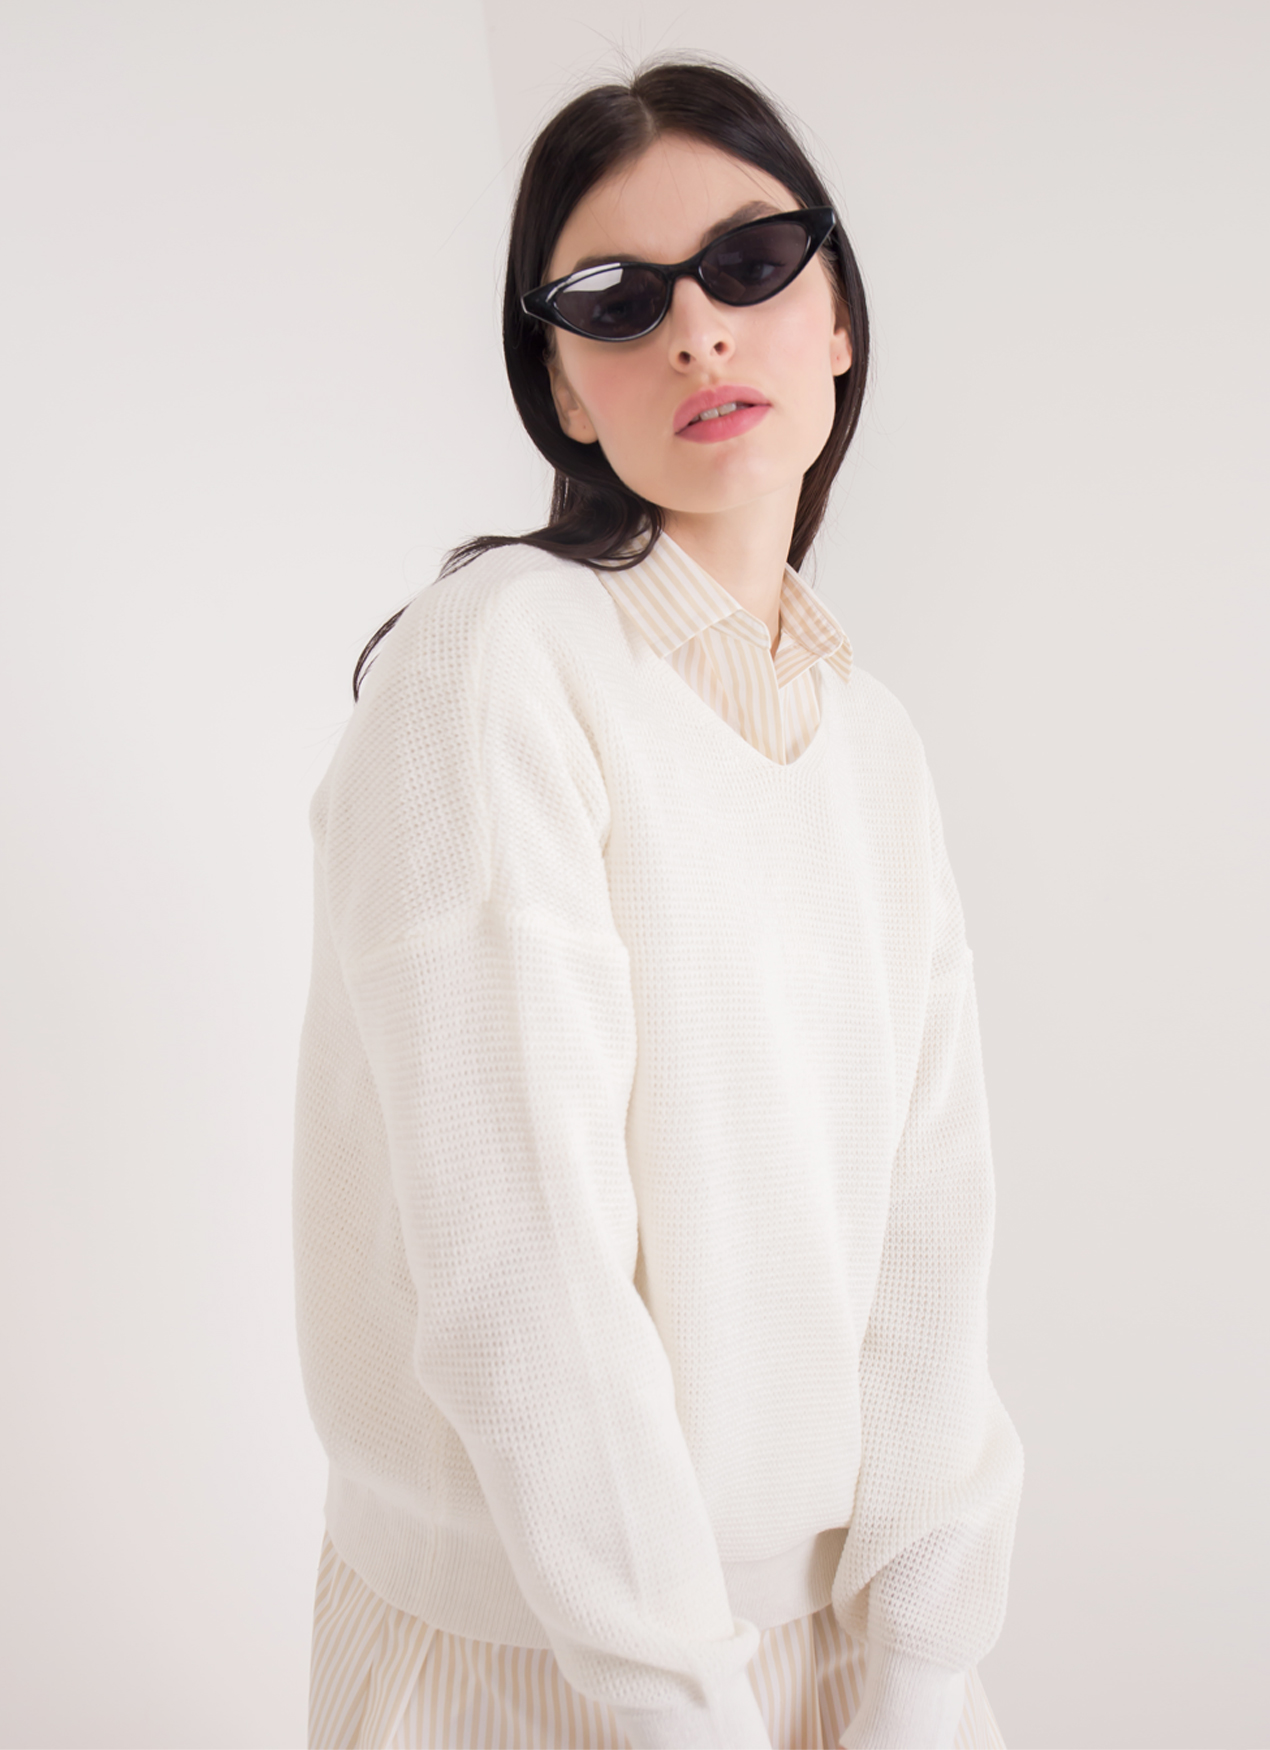 Green Parks Beatrice Sweater - Off White